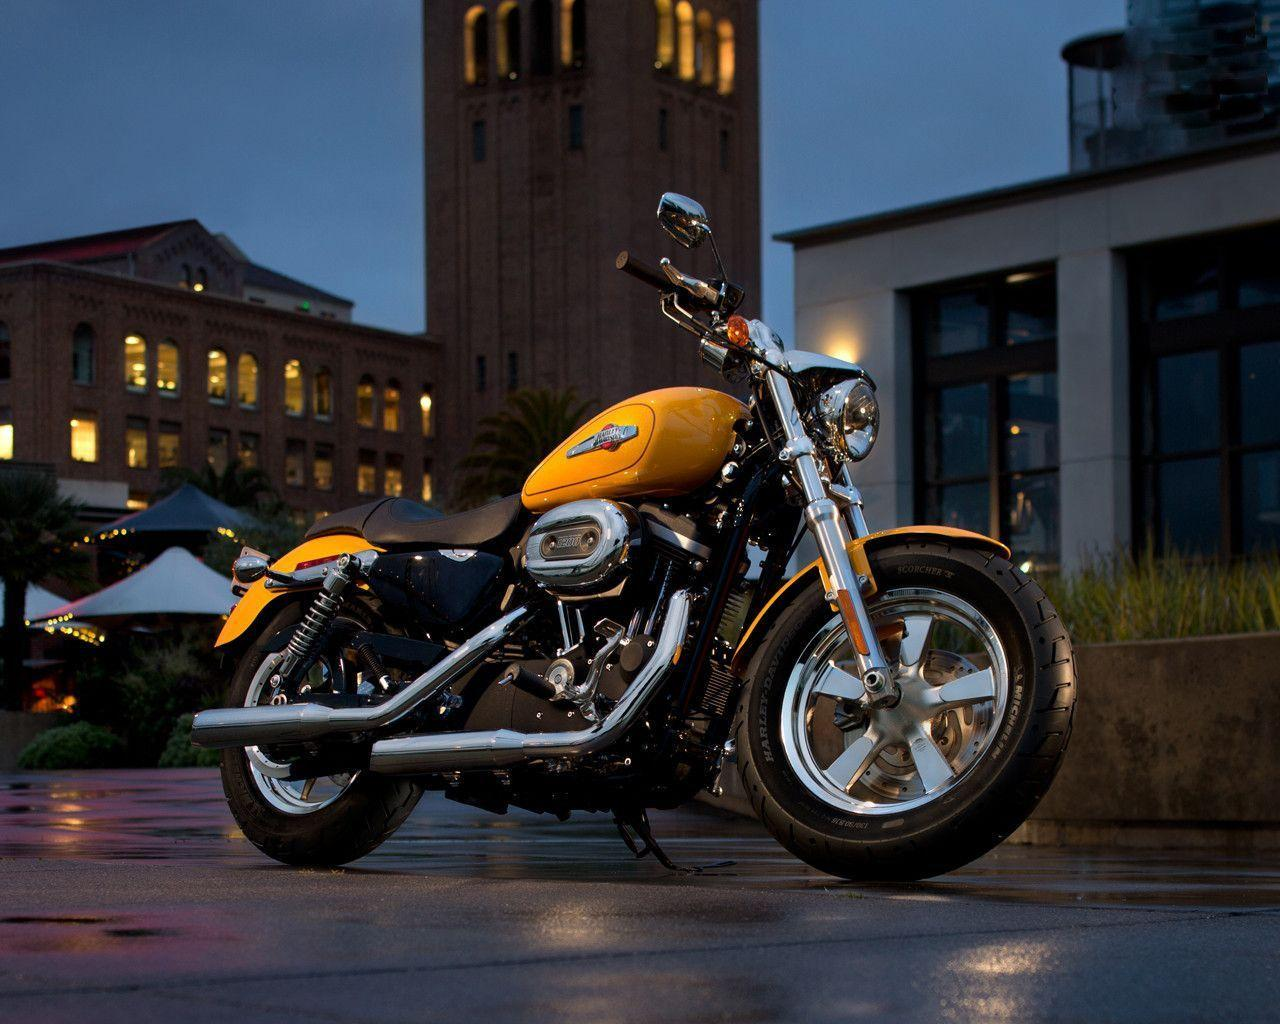 Harley Davidson HD allpaper 1080p hd desktop background wallpapers ...